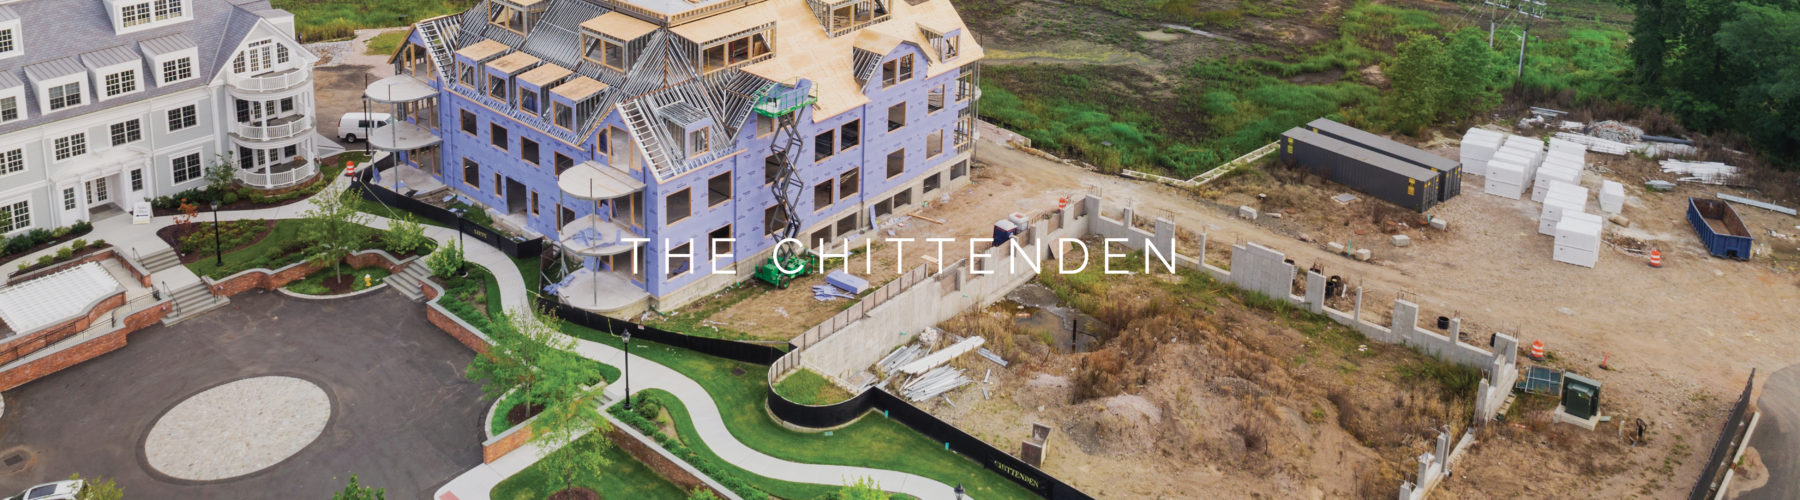 66High_TheChittenden_Header_091918